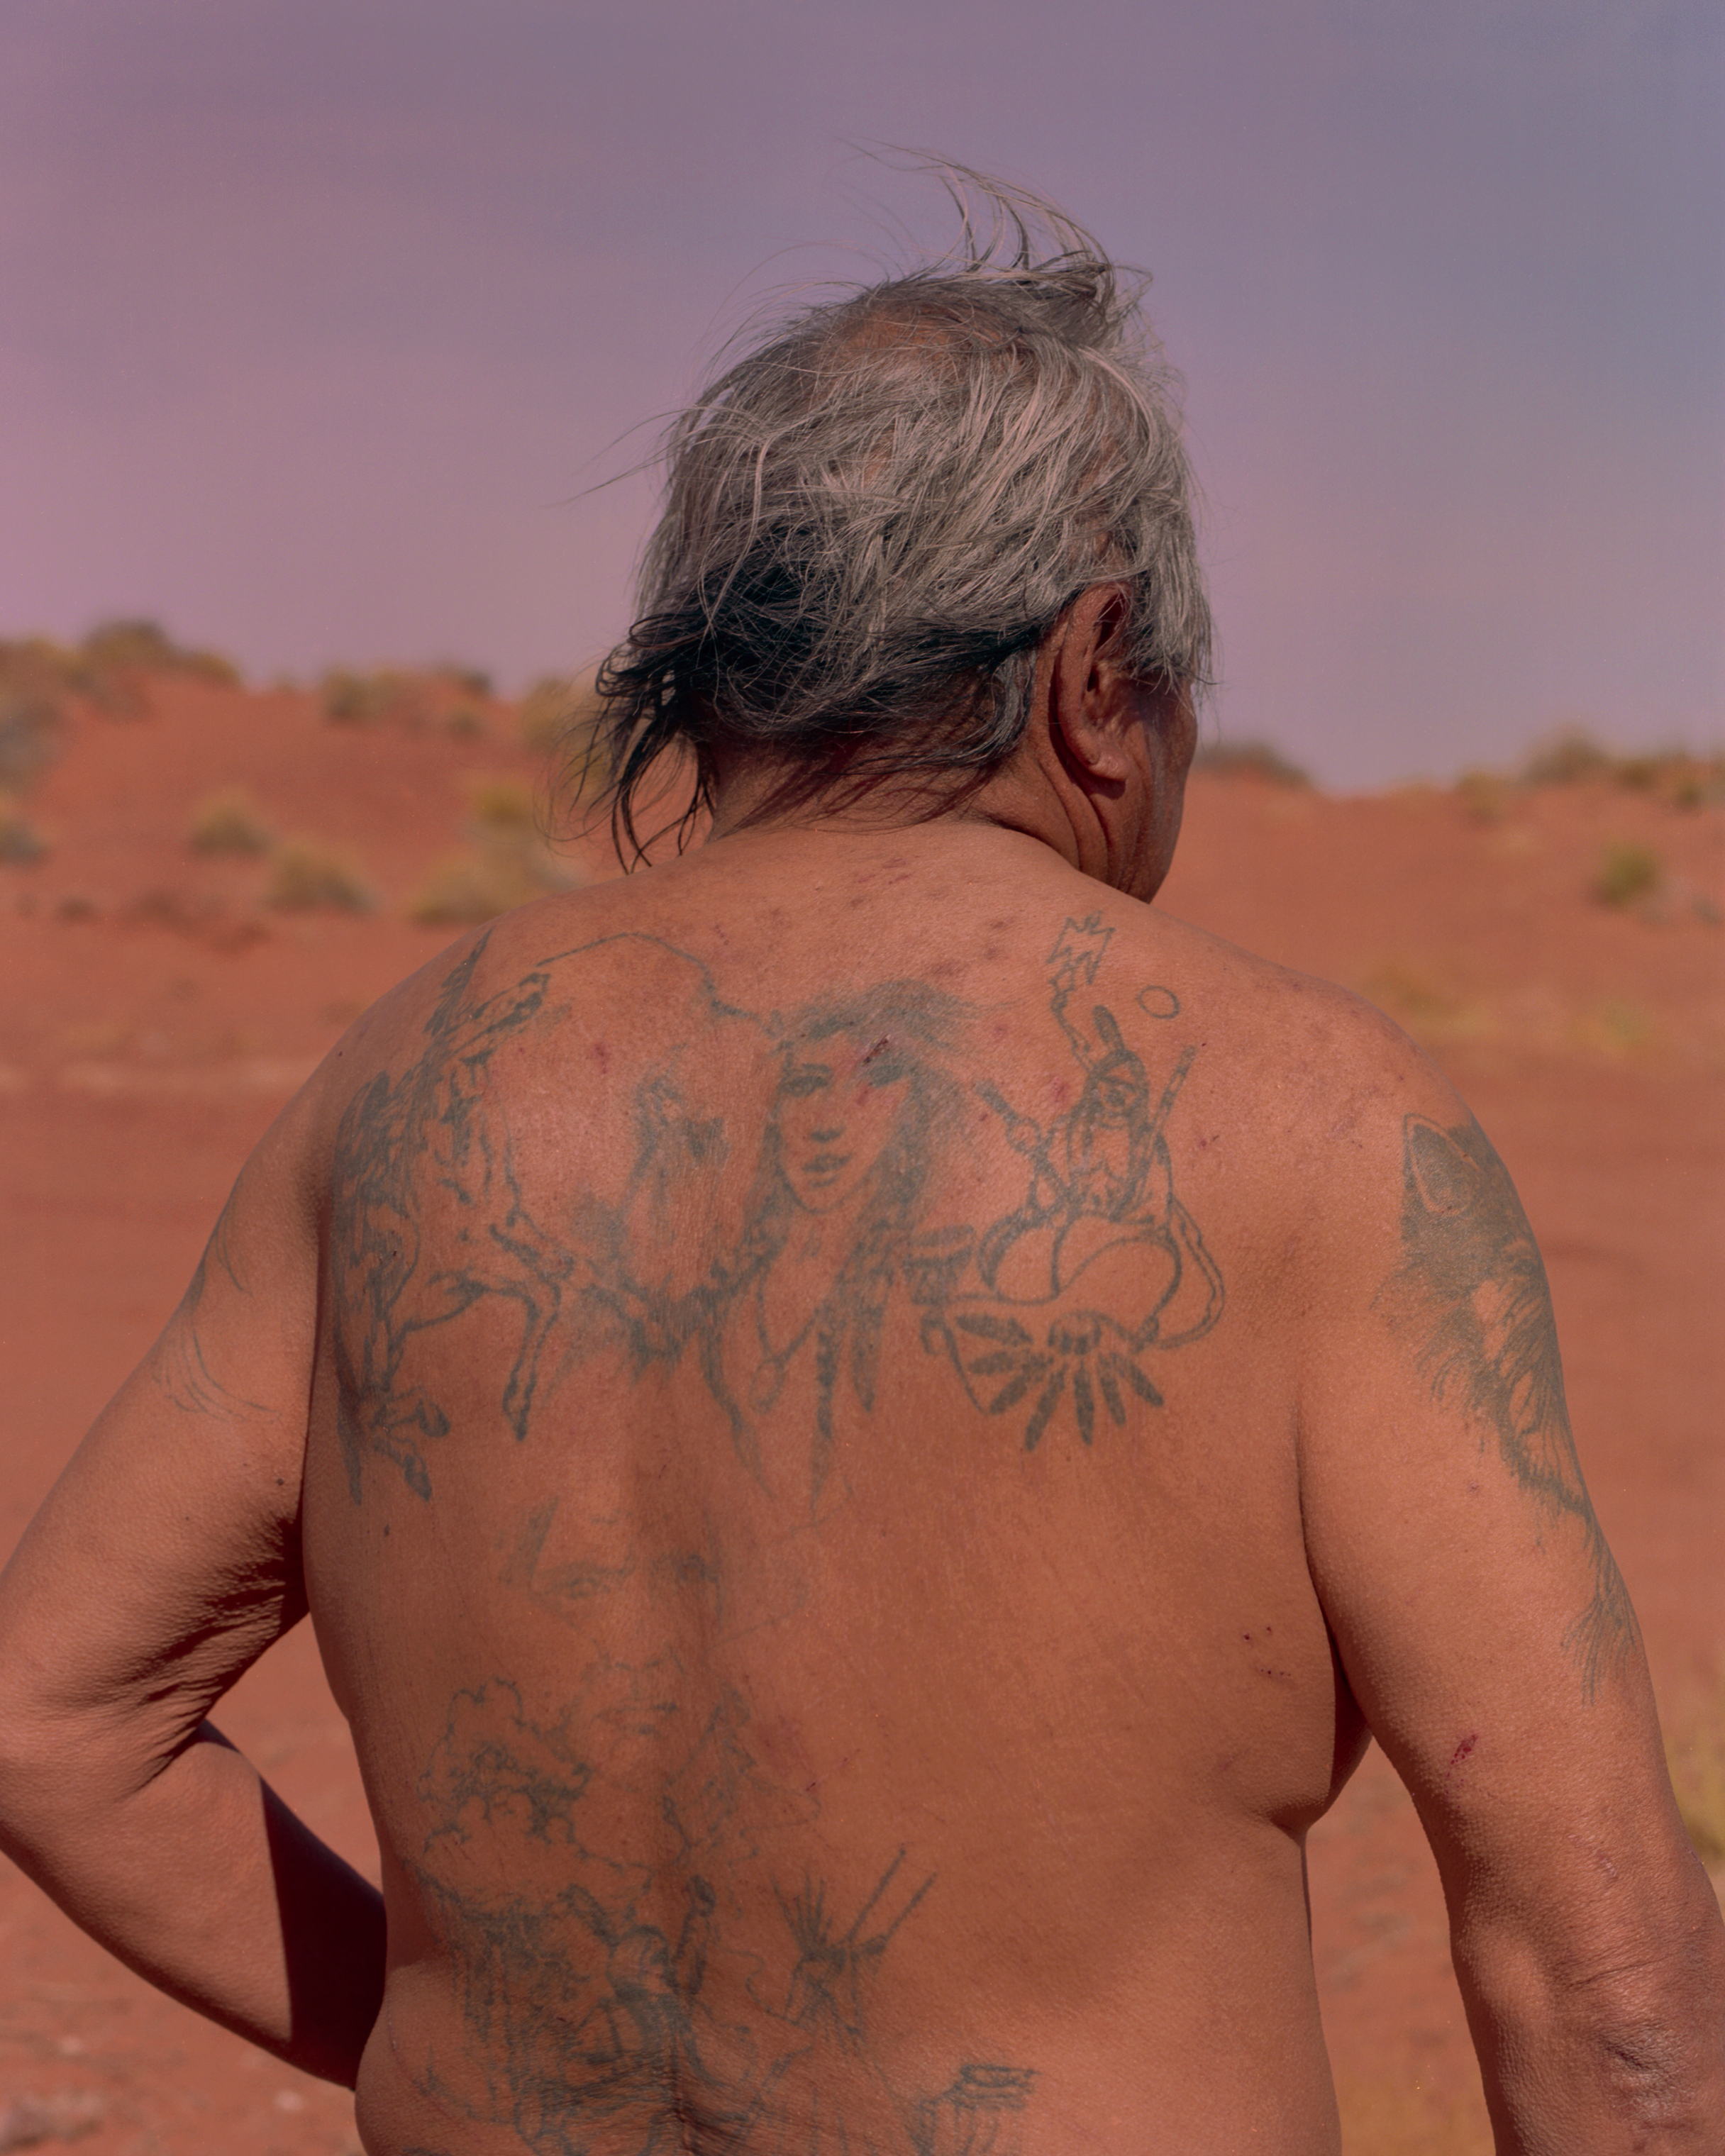 Wilson Collins is pictured at his home in Monument Valley. The tattoos covering his body include traditional Navajo imagery. Collins struggles with alcoholism, a common problem on reservations that is now being addressed by many tribes. He lives in a trailer and spends most of his days with his younger brother, who sells Navajo arts and crafts.